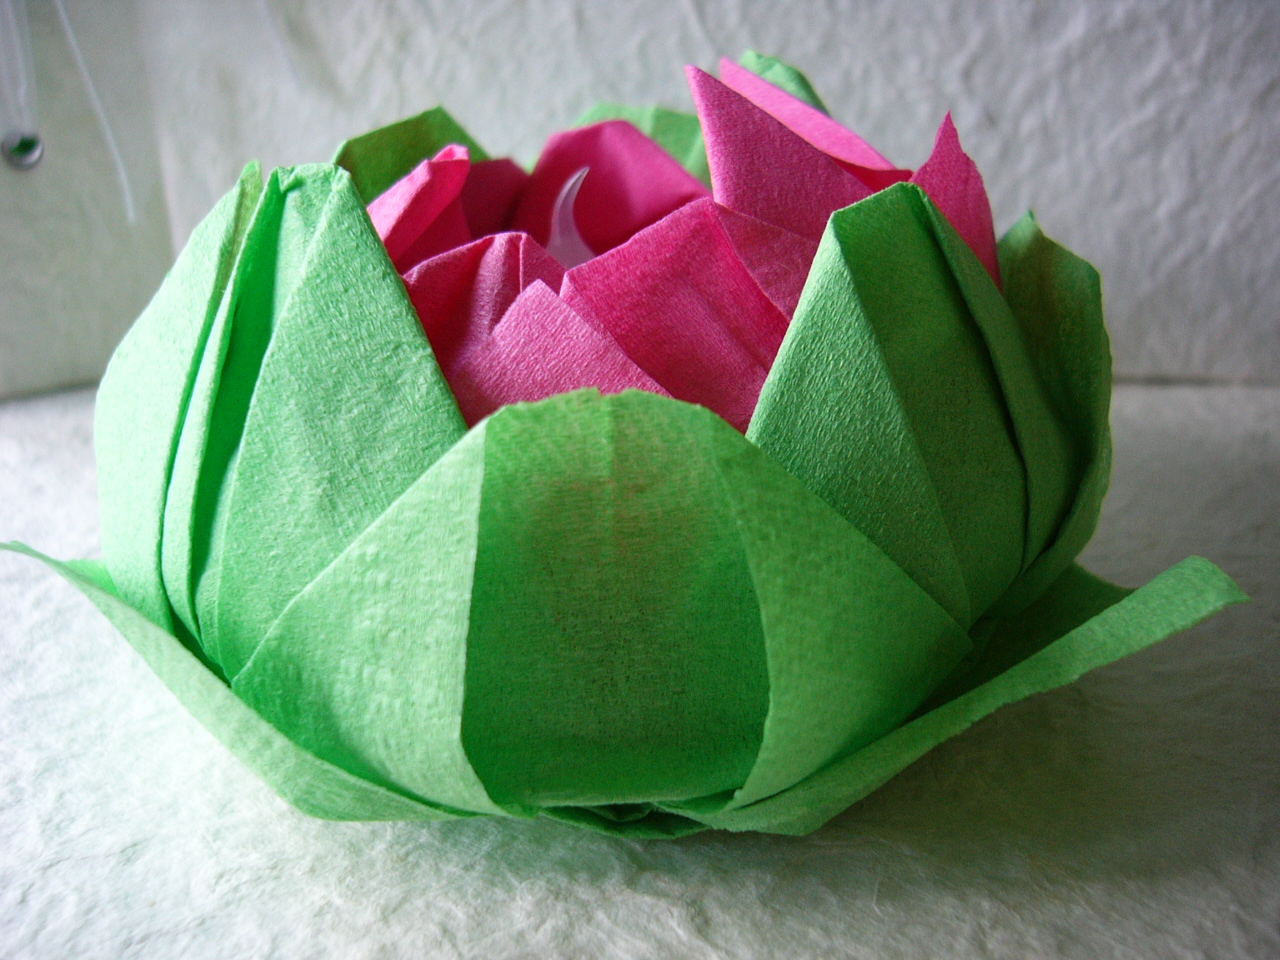 one love origami: diy friday - origami lotus candle holder - photo#37